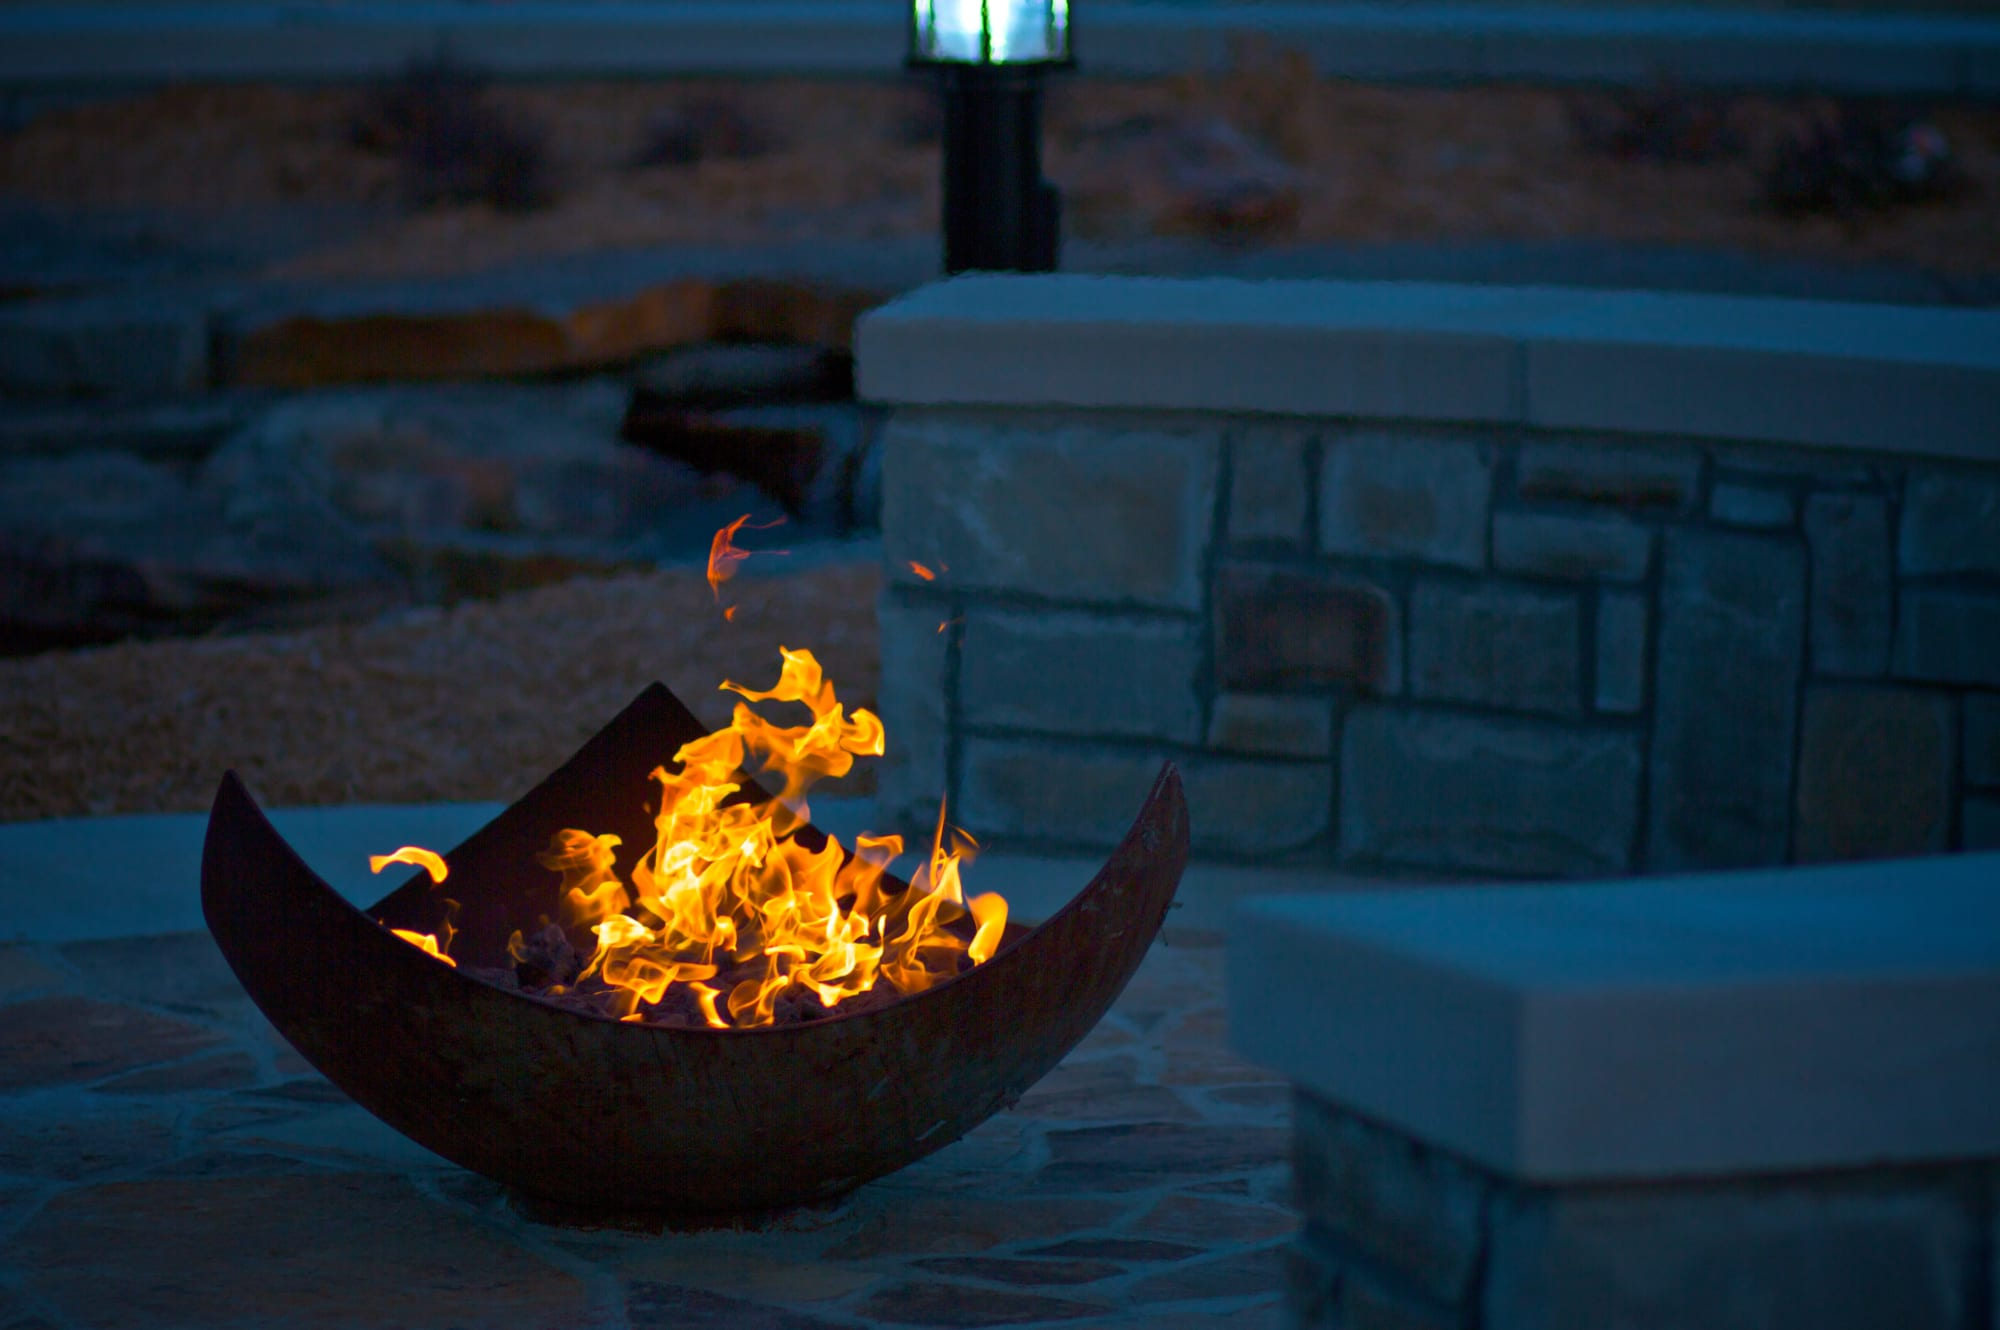 Sculptural Triangular Firebowl